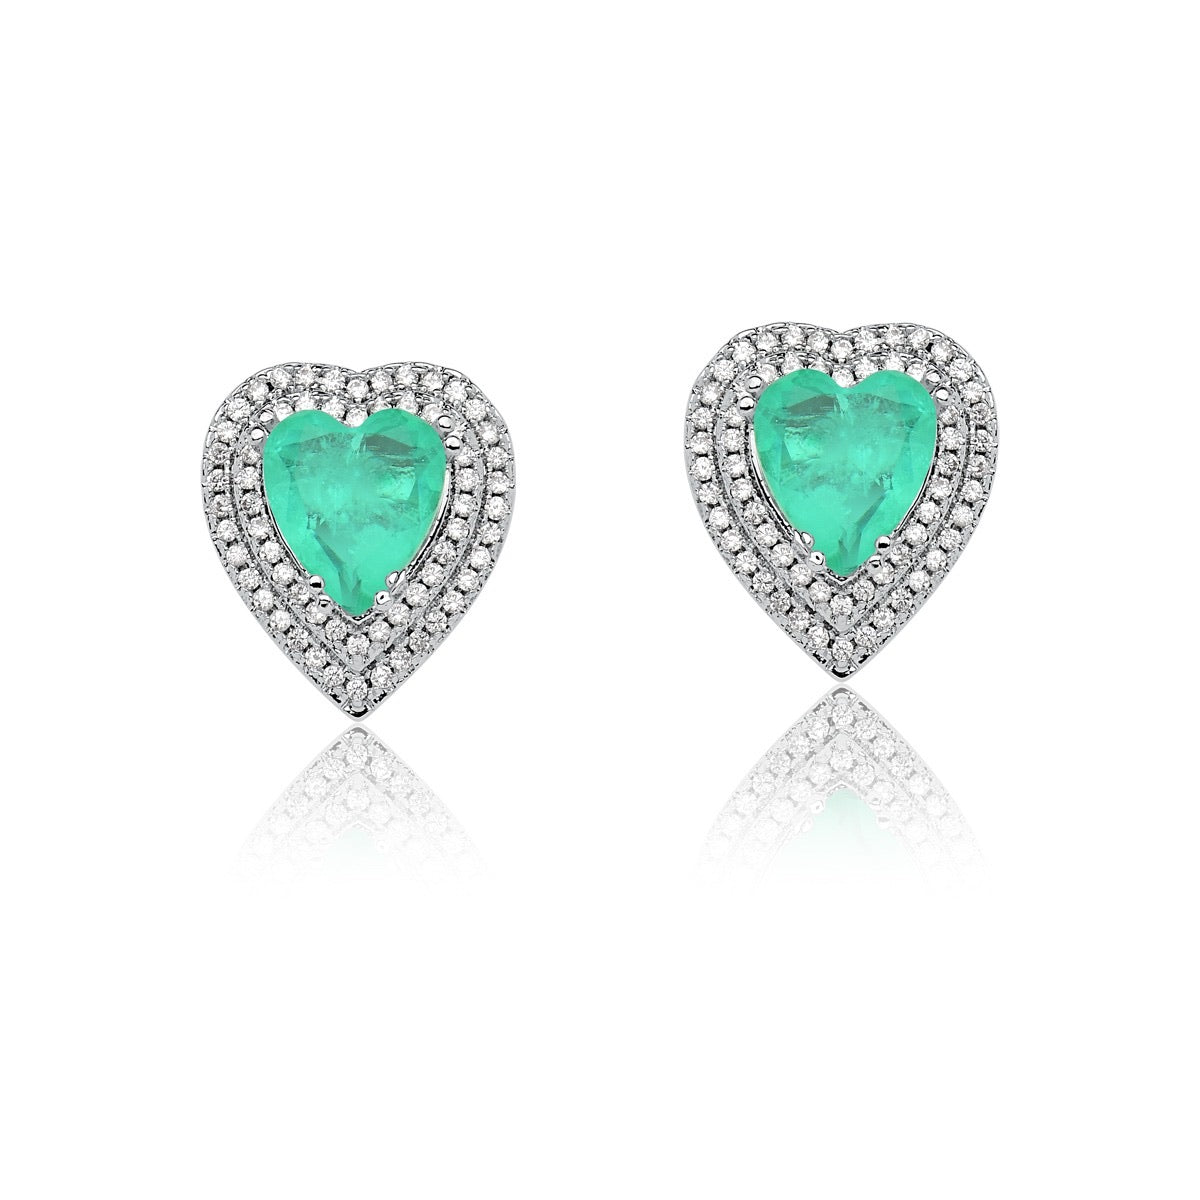 Heart Earrings Colombian Emerald fusion diamondettes